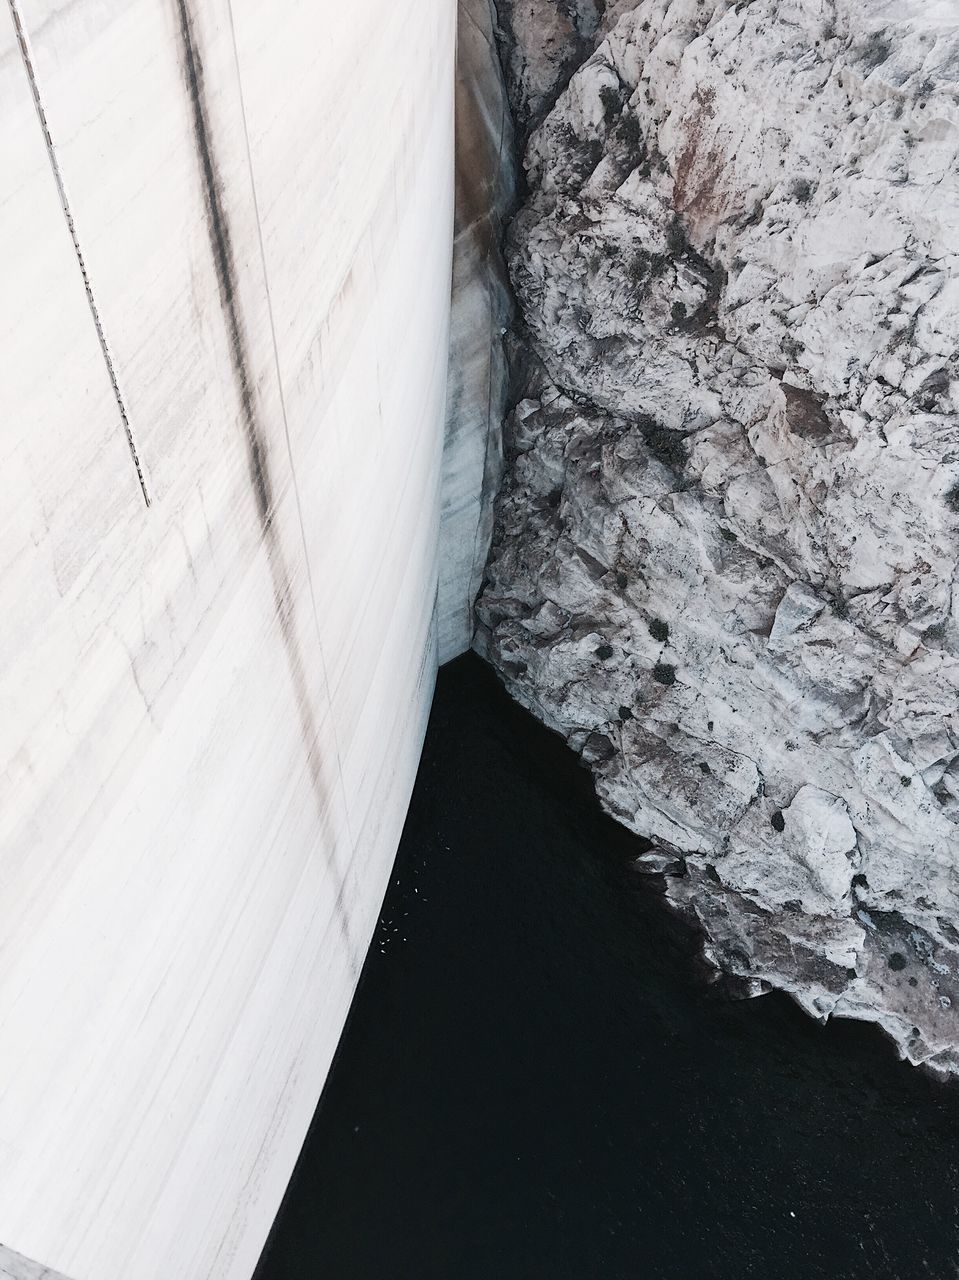 no people, rock - object, day, dam, water, nature, outdoors, built structure, architecture